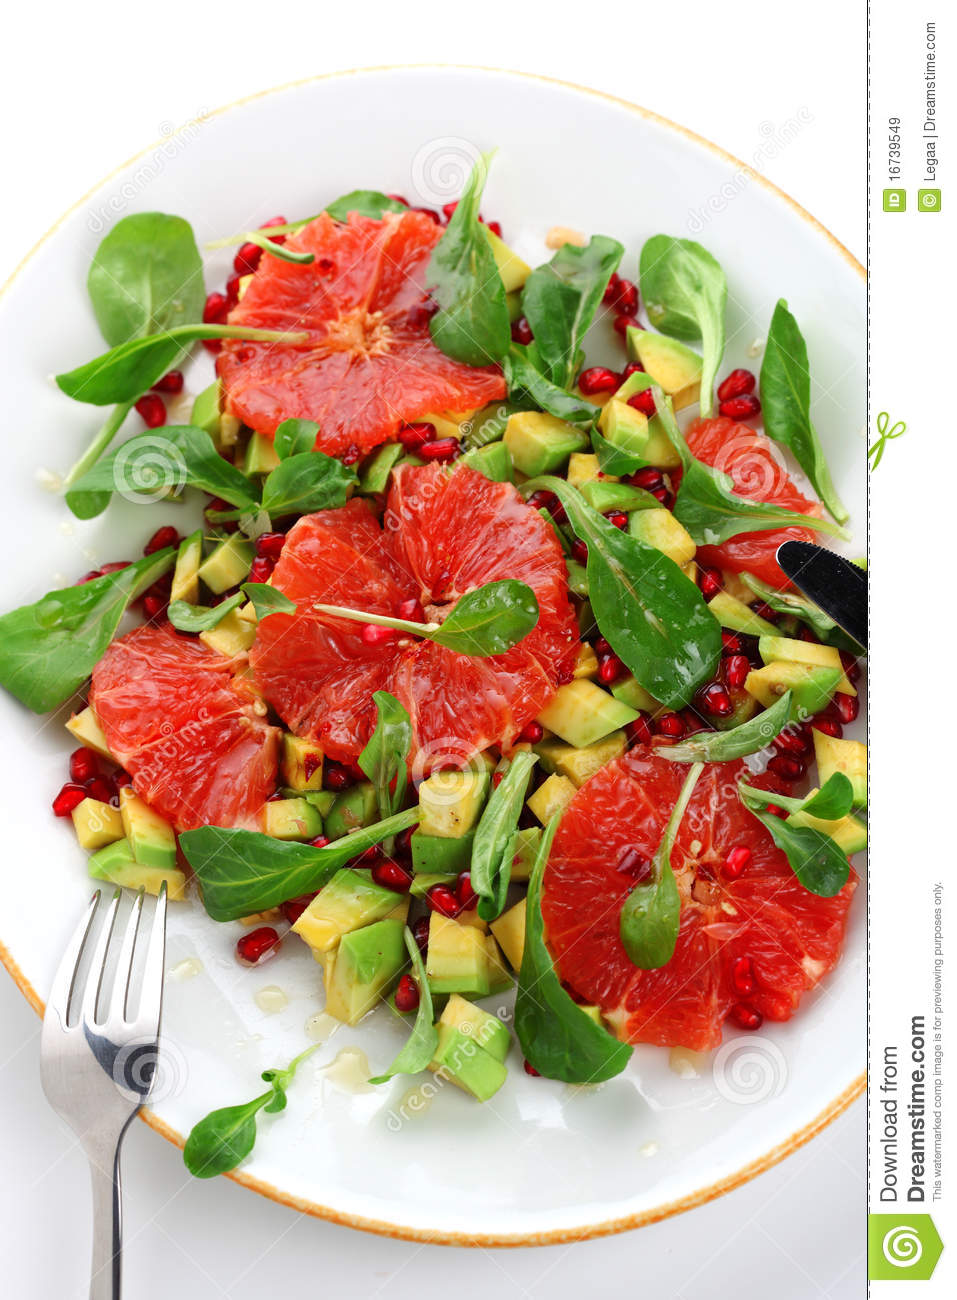 Fresh salad with grapefruit, avocado and pomegranate seeds.